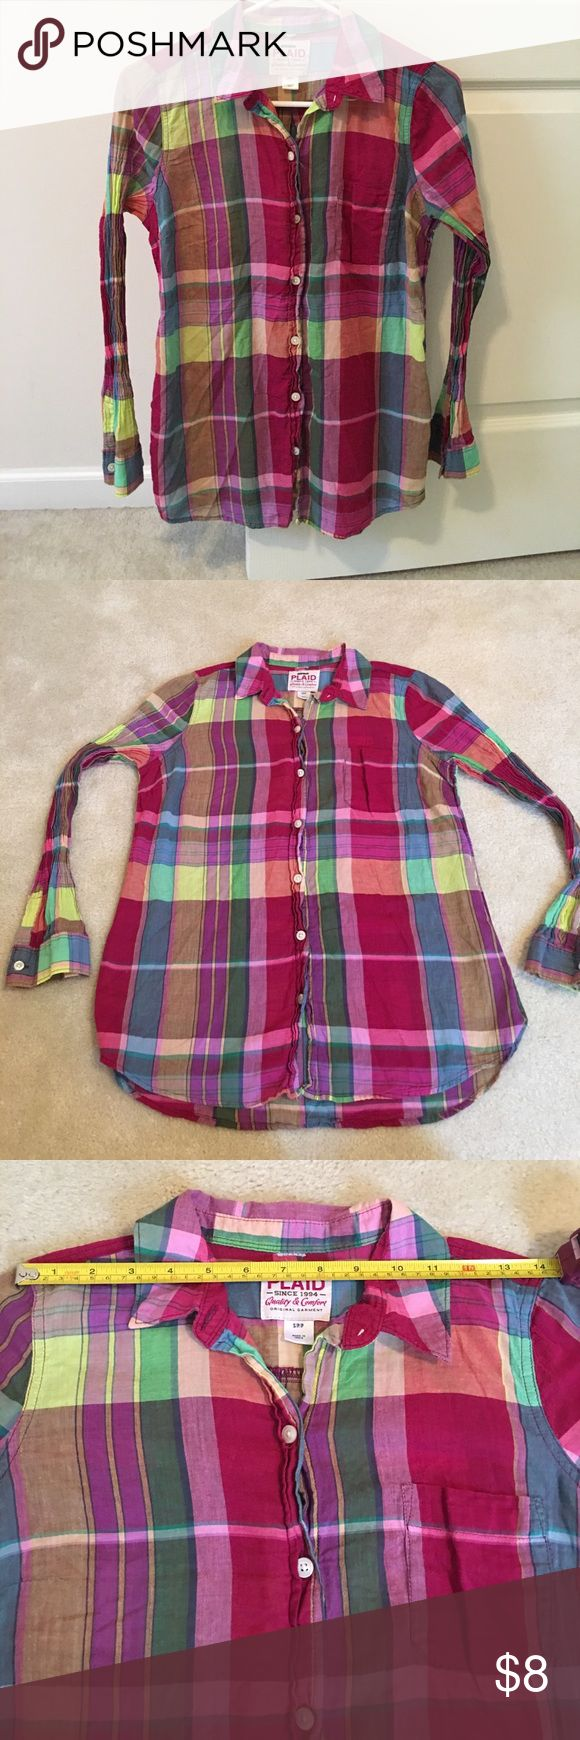 """Old Navy Plaid Checkered Long Sleeve Button Up Gently loved. Missing top button at collar as shown in second to last pic. Price reflects this. Front pocket. Accordion style sleeves that stretch (see last pic) with button cuff. Bright colors pretty for spring and fall. Measures 14"""" across from shoulder to shoulder, 18"""" across from arm pit to arm pit, and 25"""" long (in front) from top of shoulder to bottom hem (26"""" in back). Made of 100% Cotton. Has some stretch. Old Navy Tops Button Down…"""